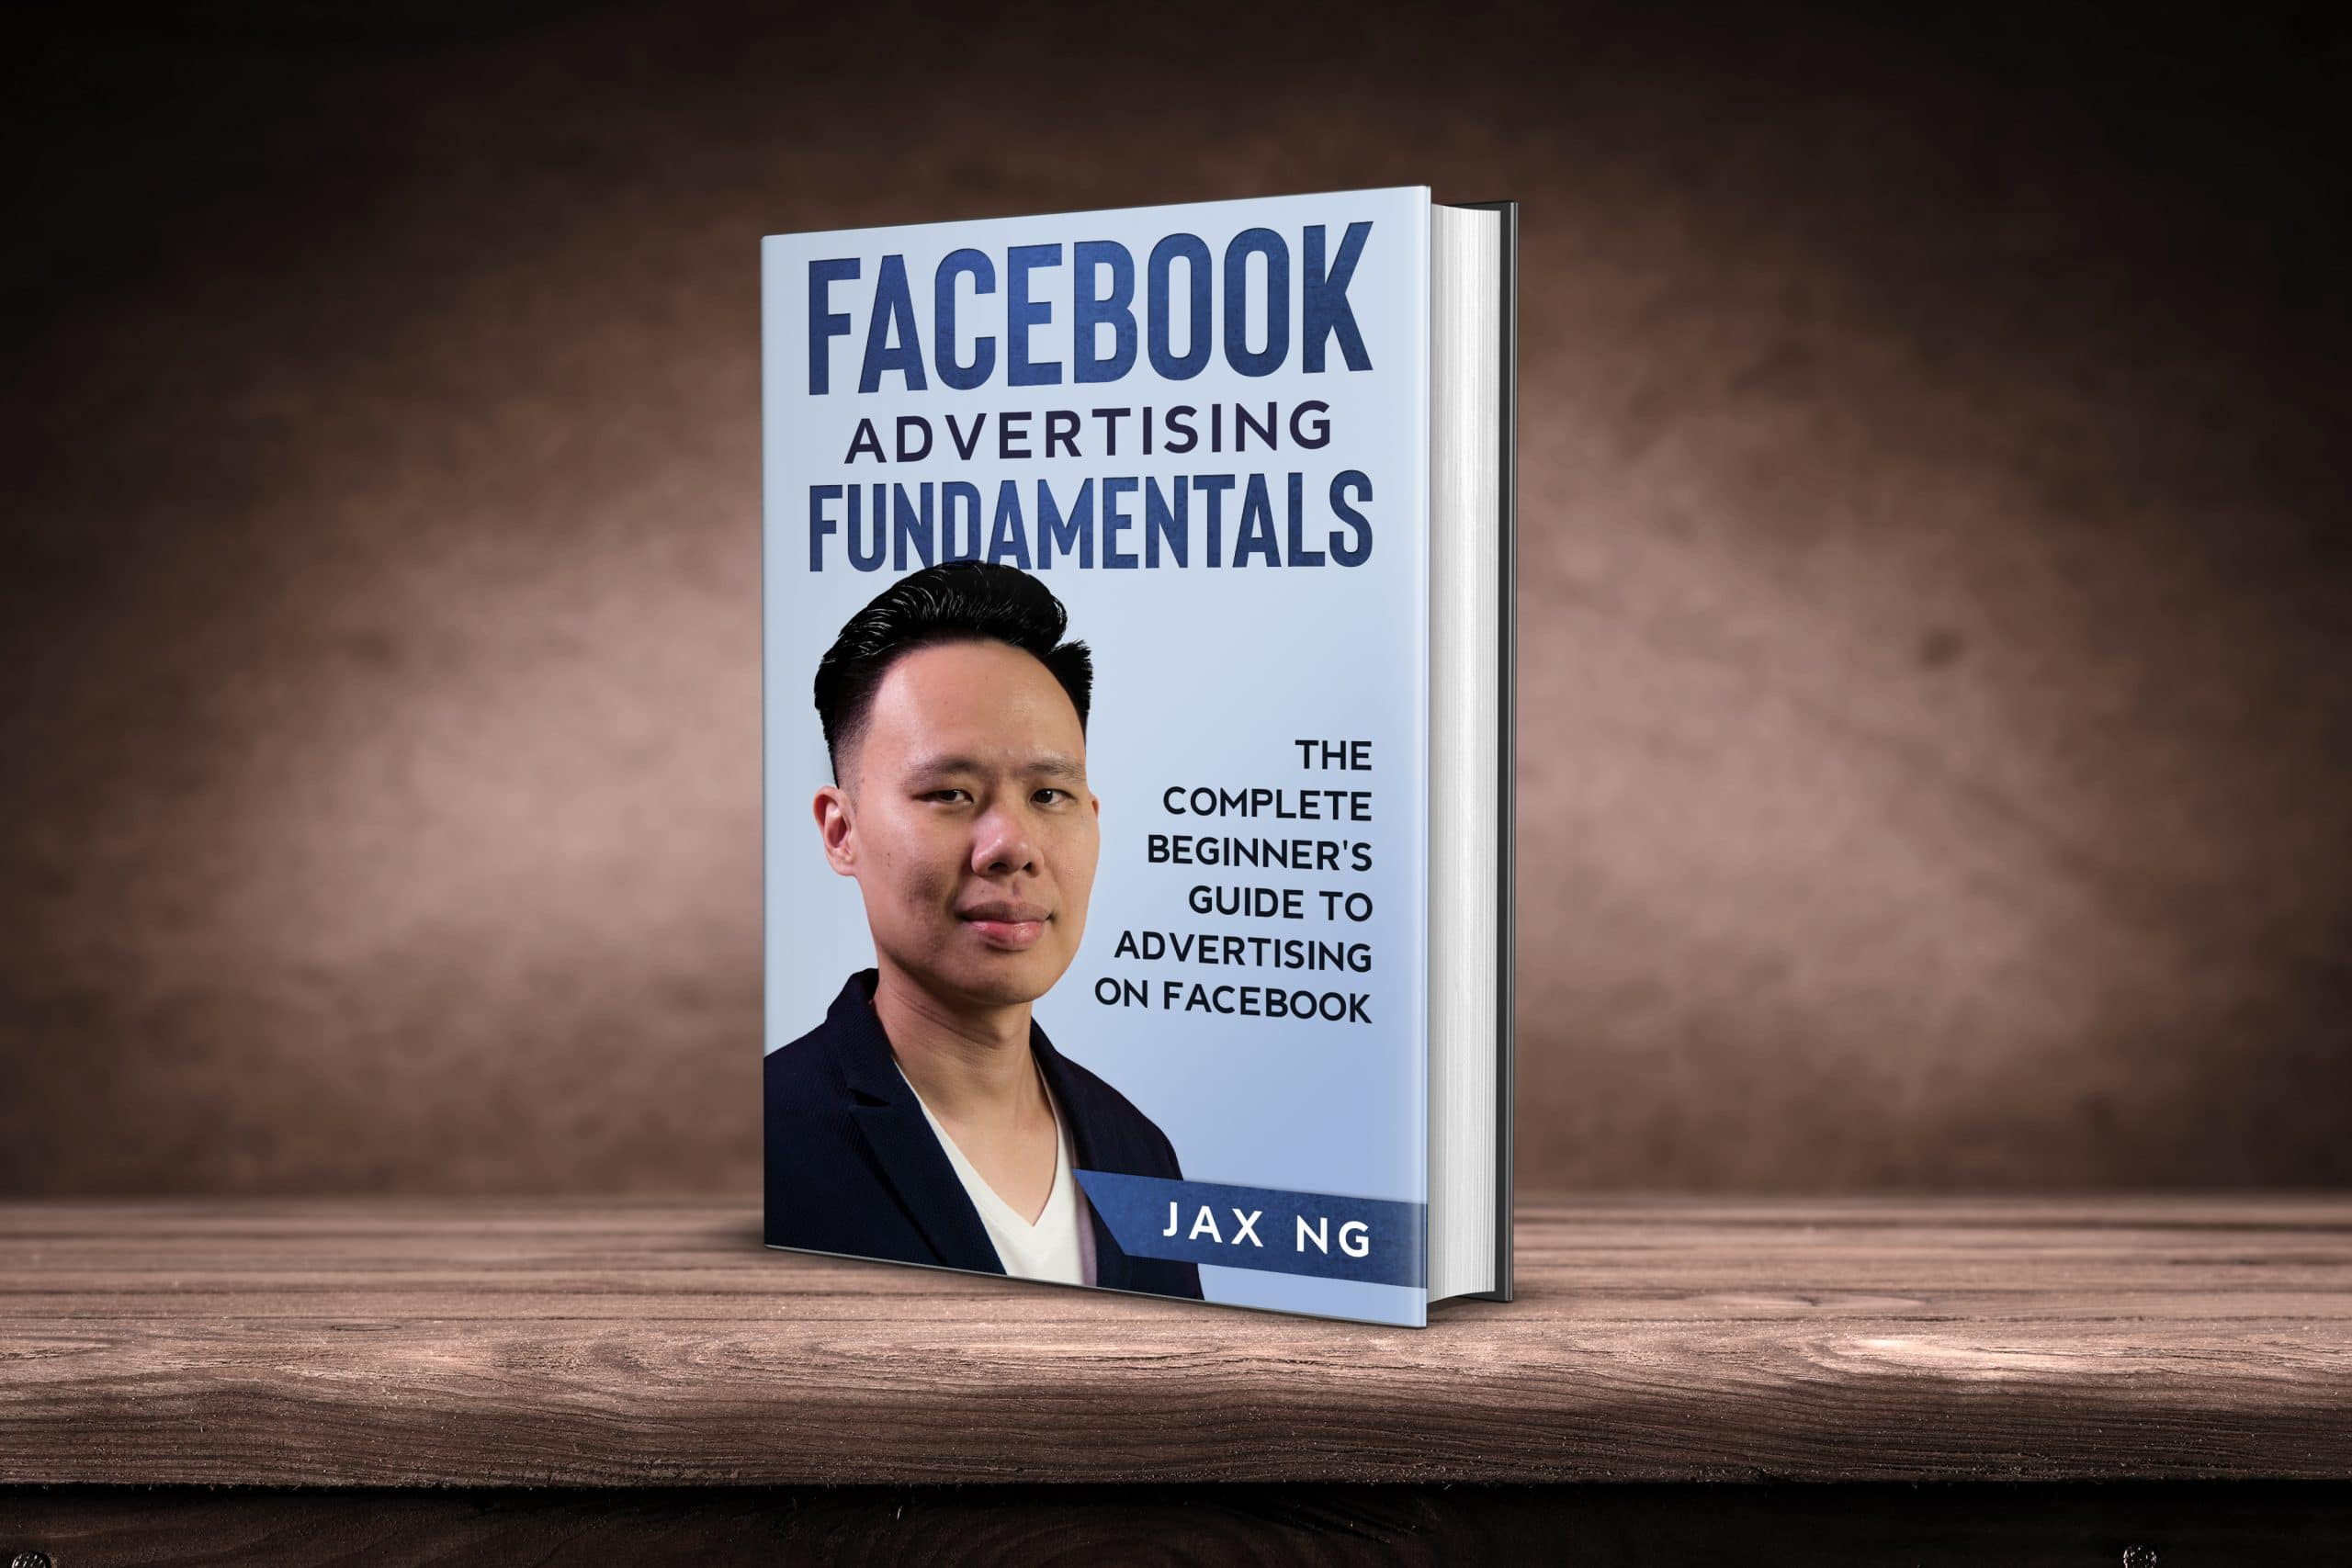 Jax Ng - Facebook Advertising Fundamentals